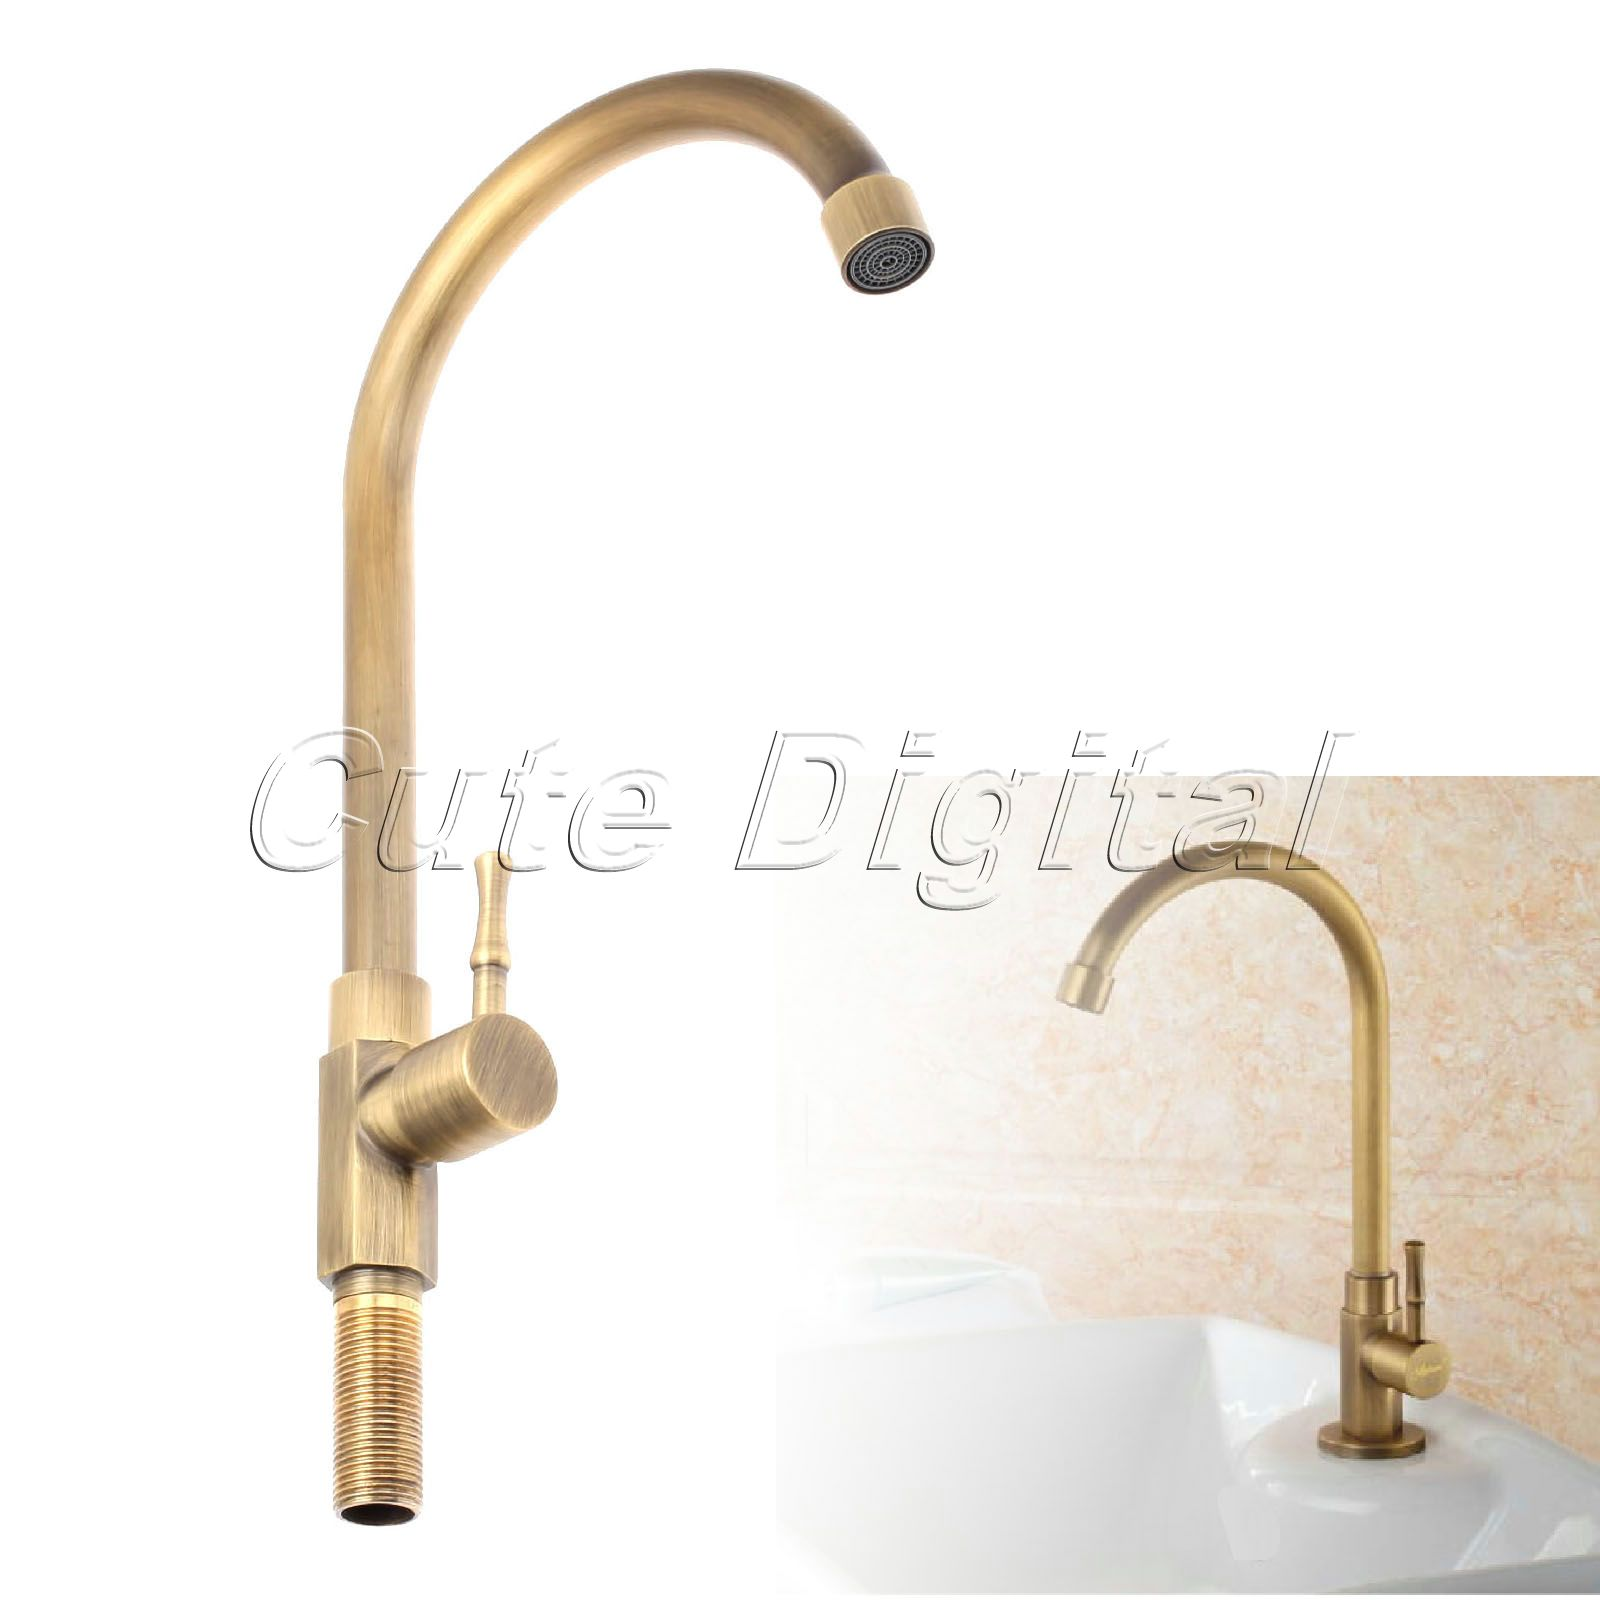 new bronze oil high spout faucets style vessel faucet classic bathroom design free of rubbed